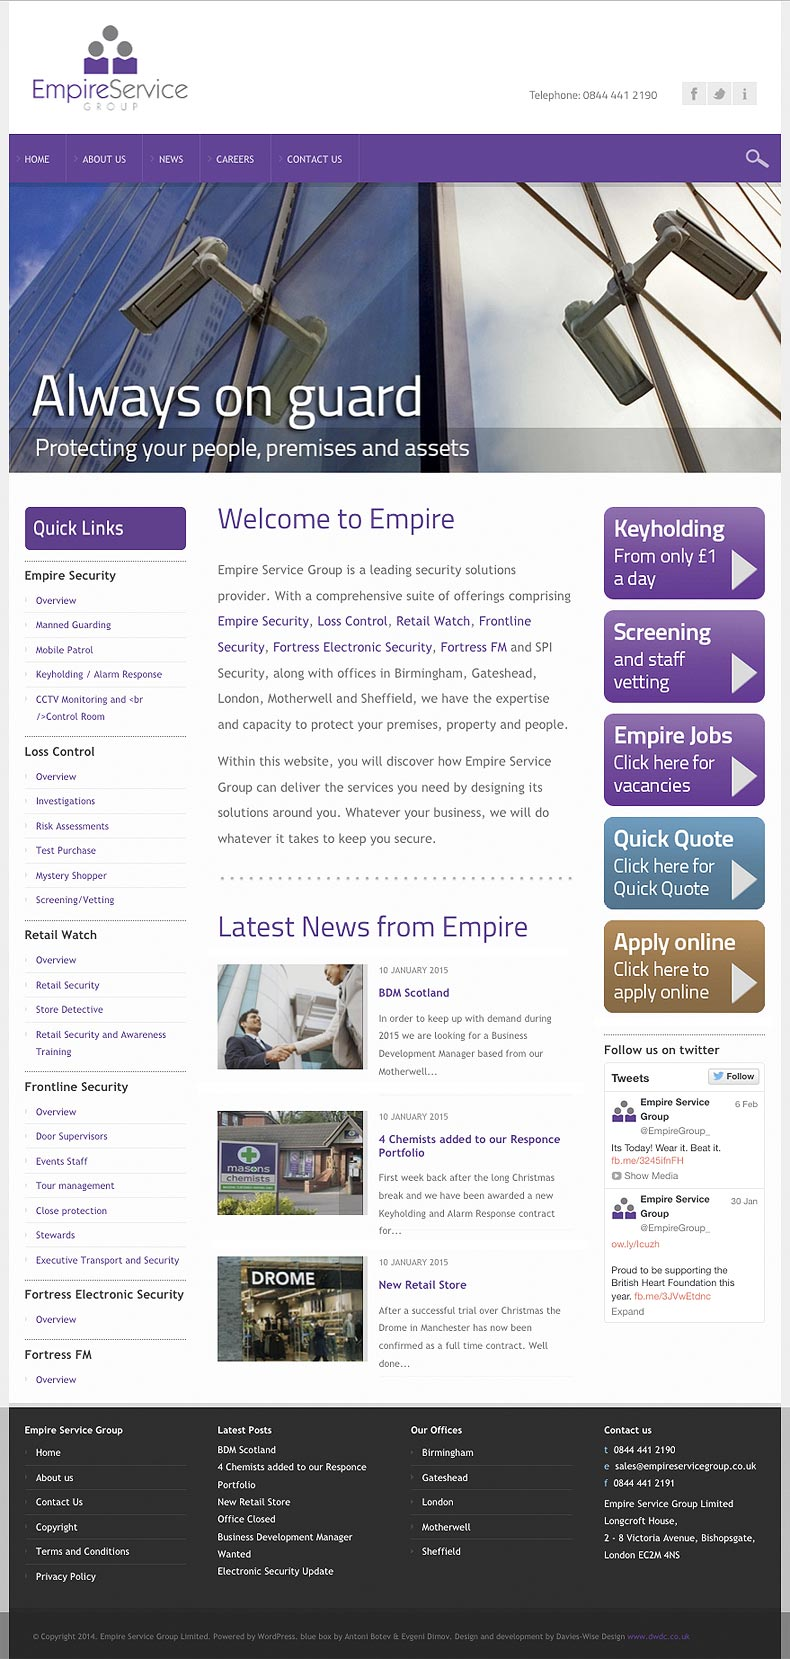 Empire Service Group web site home page